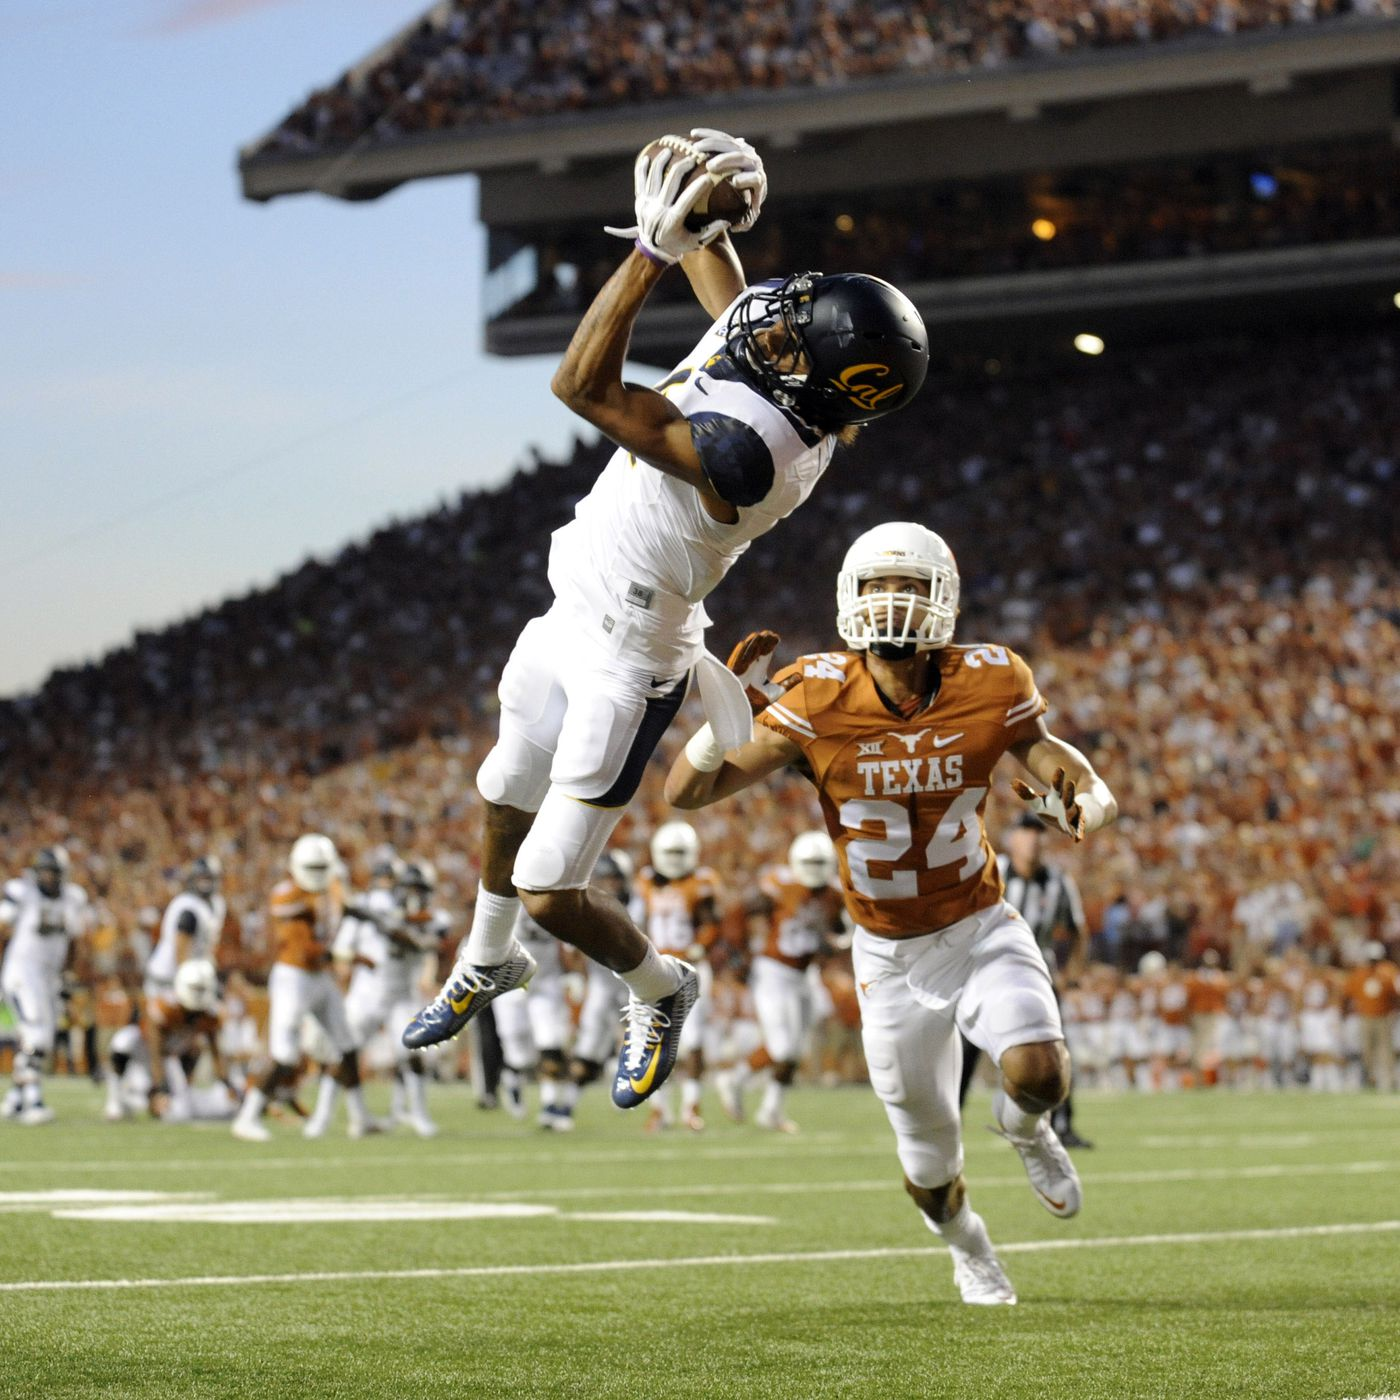 NFL Draft Results: Seahawks select Kenny Lawler with 7th